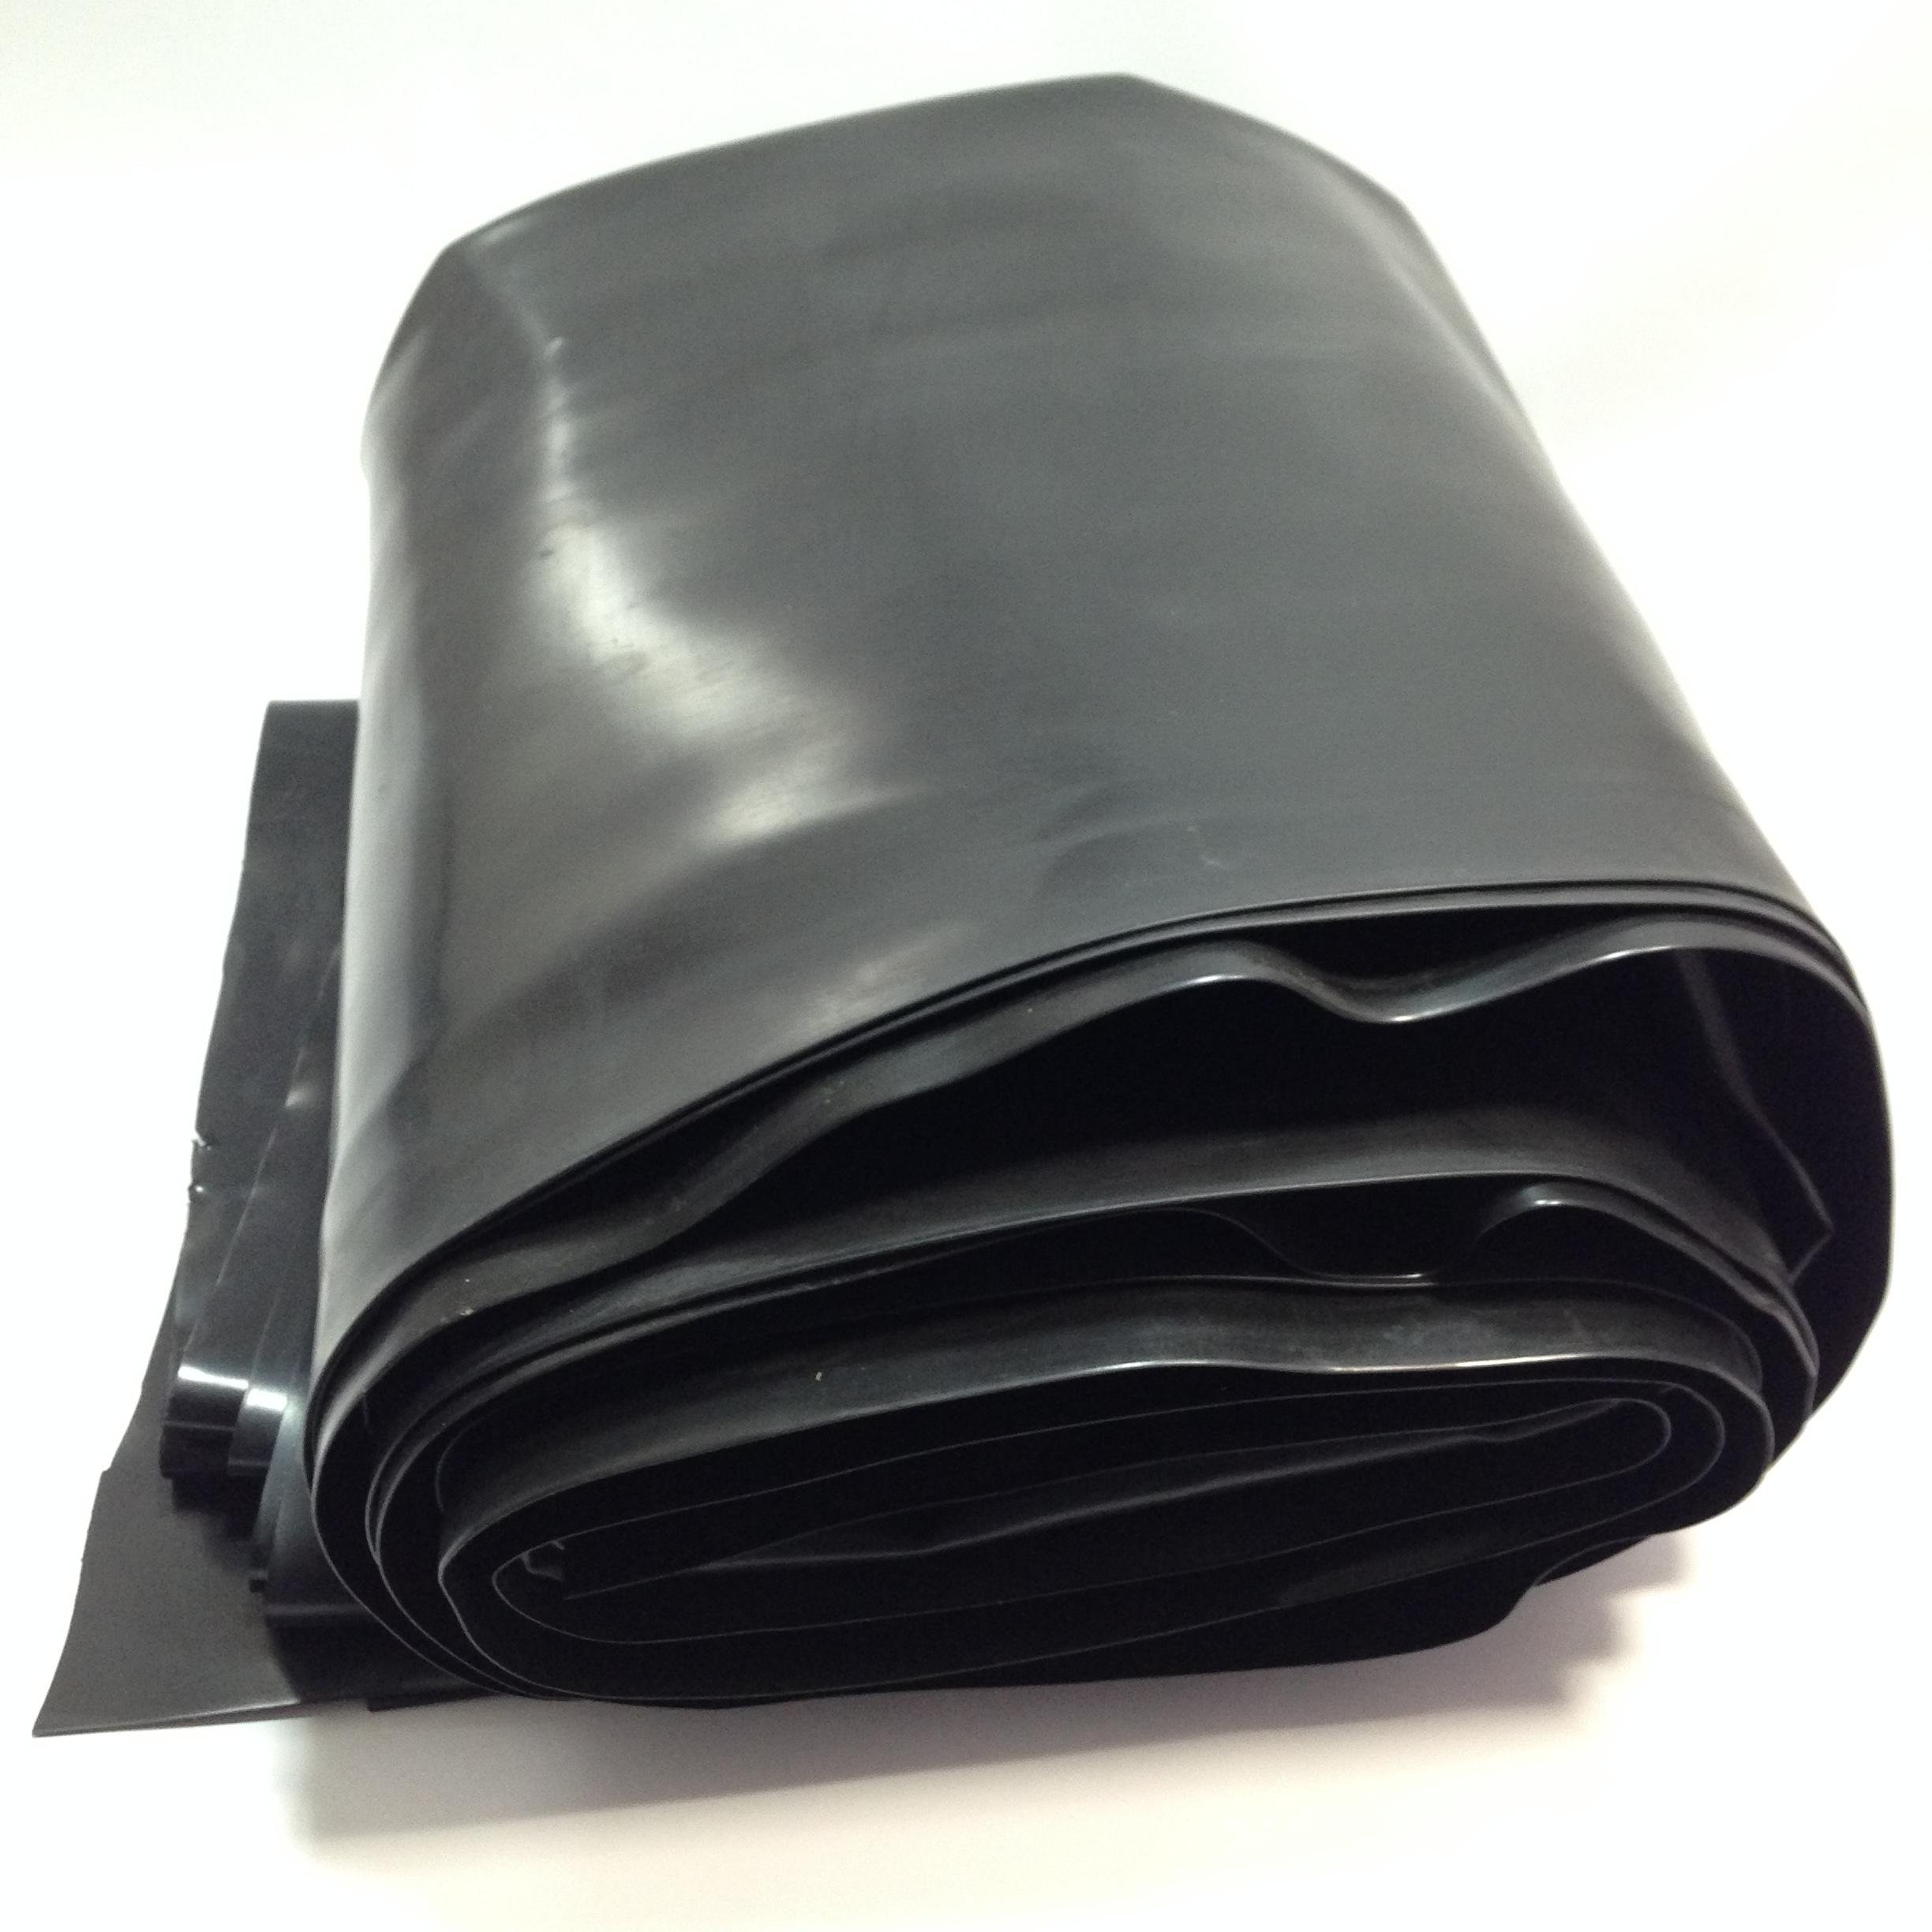 Custom Pro 12.5 Feet x 10 Feet Super-Flex Pond and Water Garden Liner - Black - Compare to EPDM and PVC Liner - Stronger and Easier to Use - Resists Punctures, Tears, UV and Insects - 20 Year Warranty